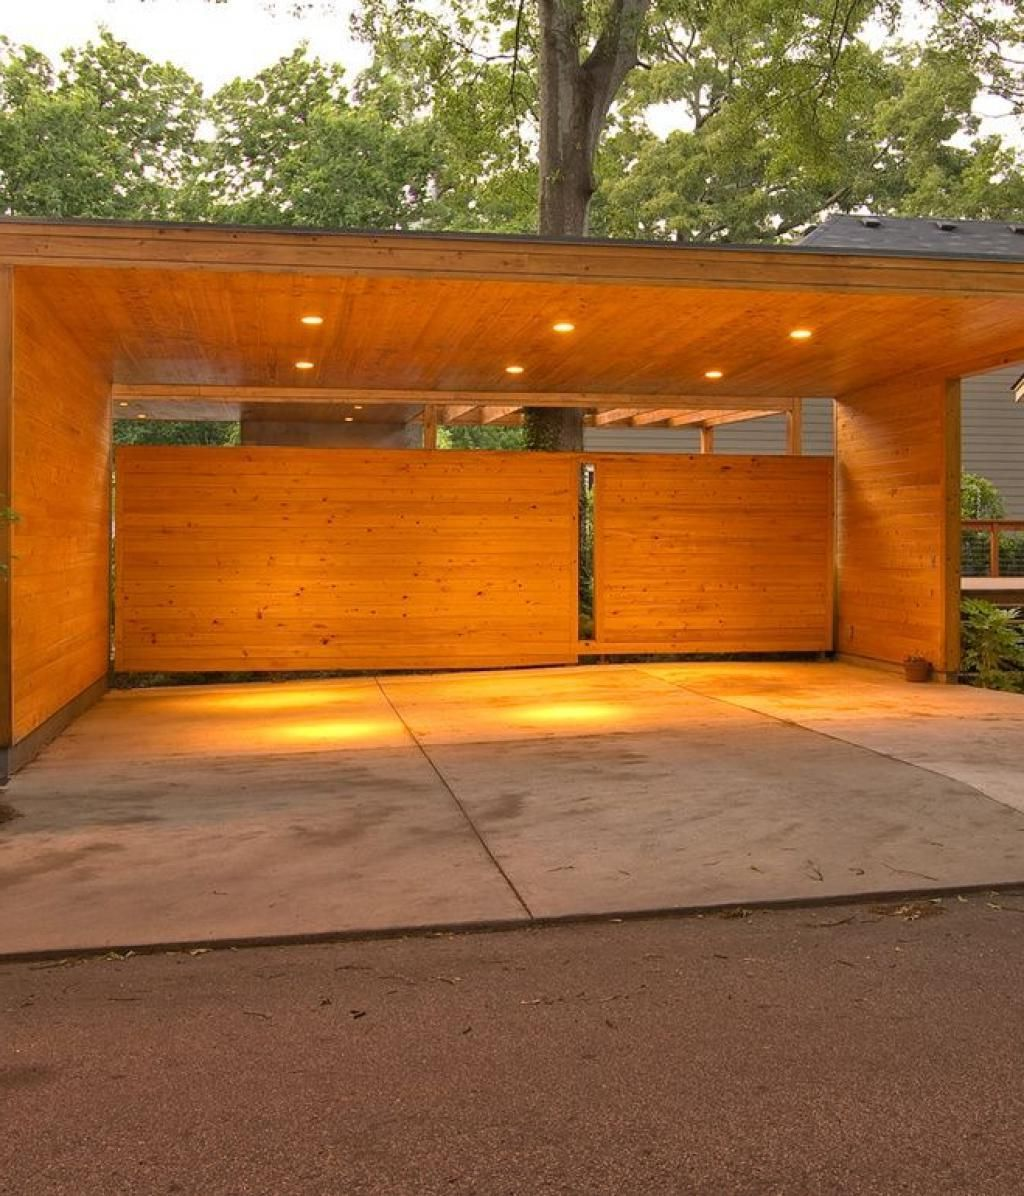 Impresive Design Carport Area With Wooden Design Material